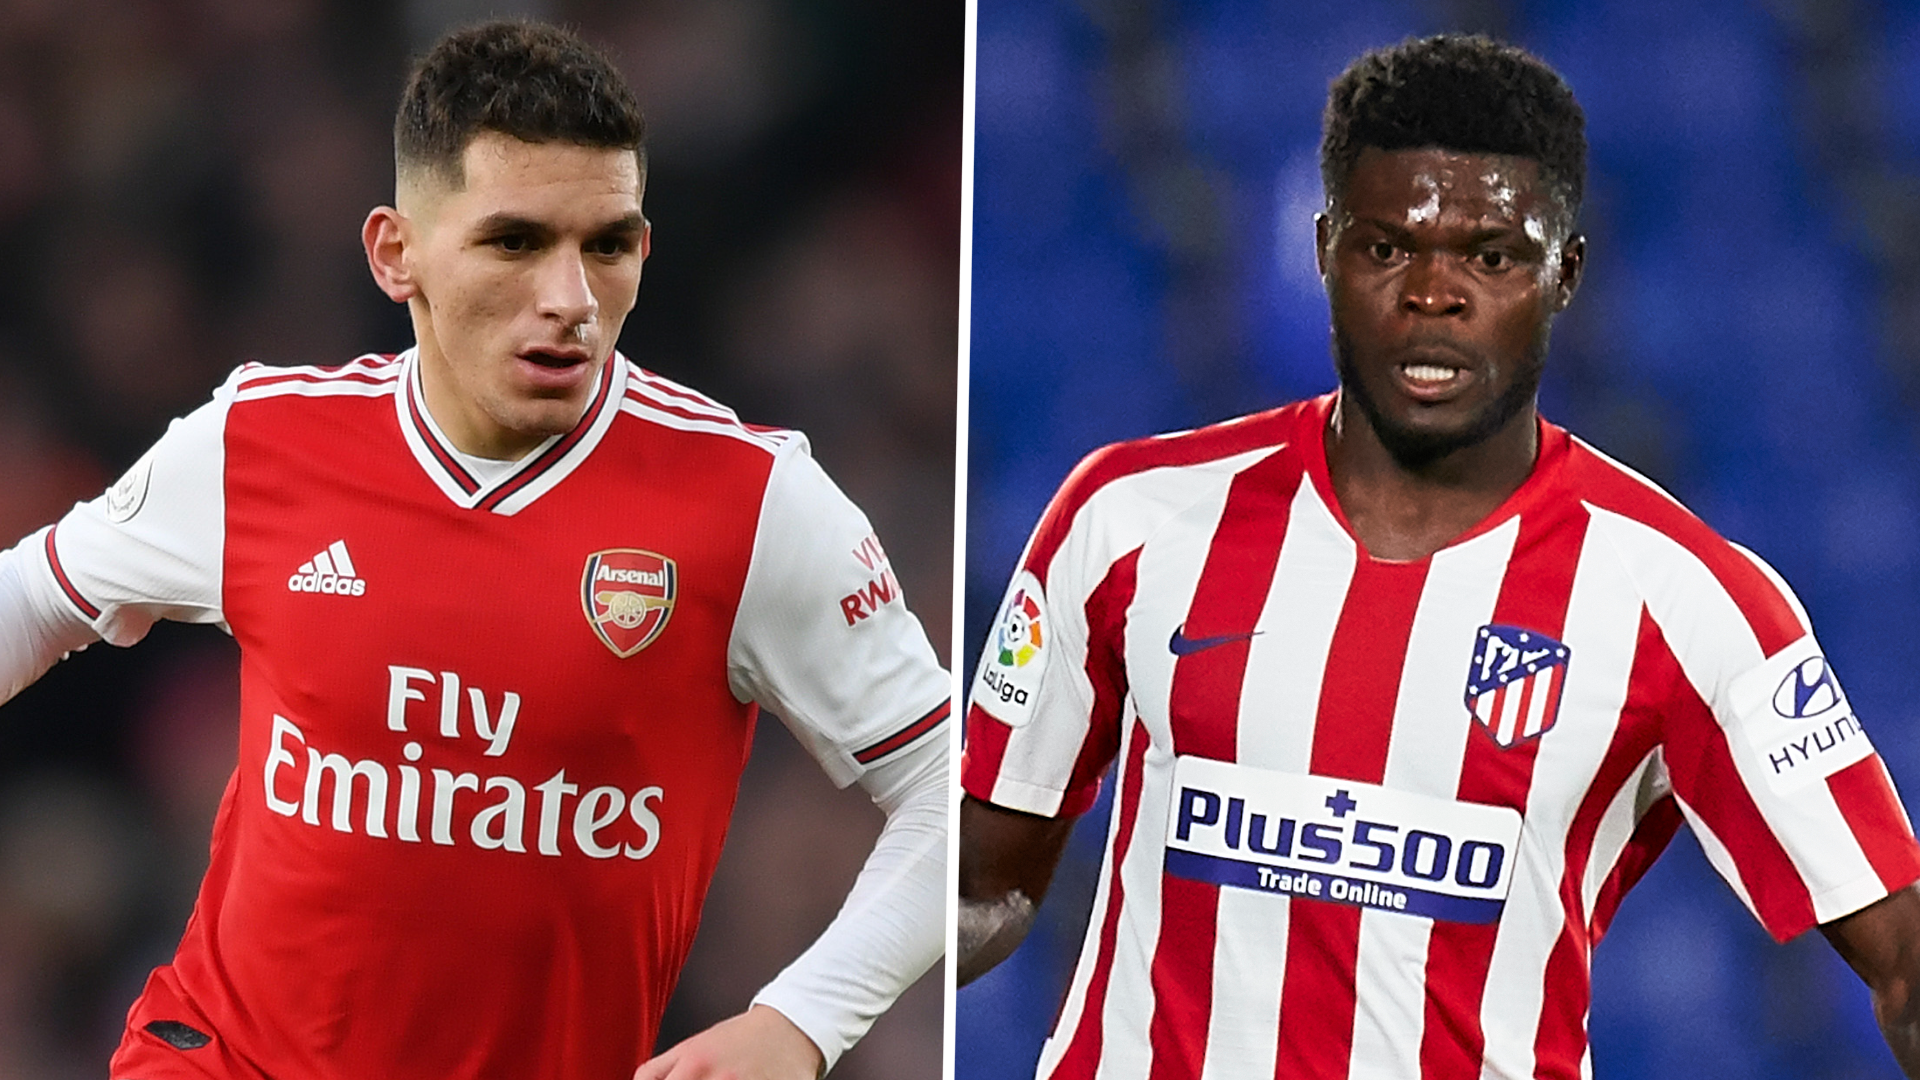 'Arsenal lacked a player of that profile' - Suarez tips Partey to shine and says Torreira is 'ideal' for Simeone